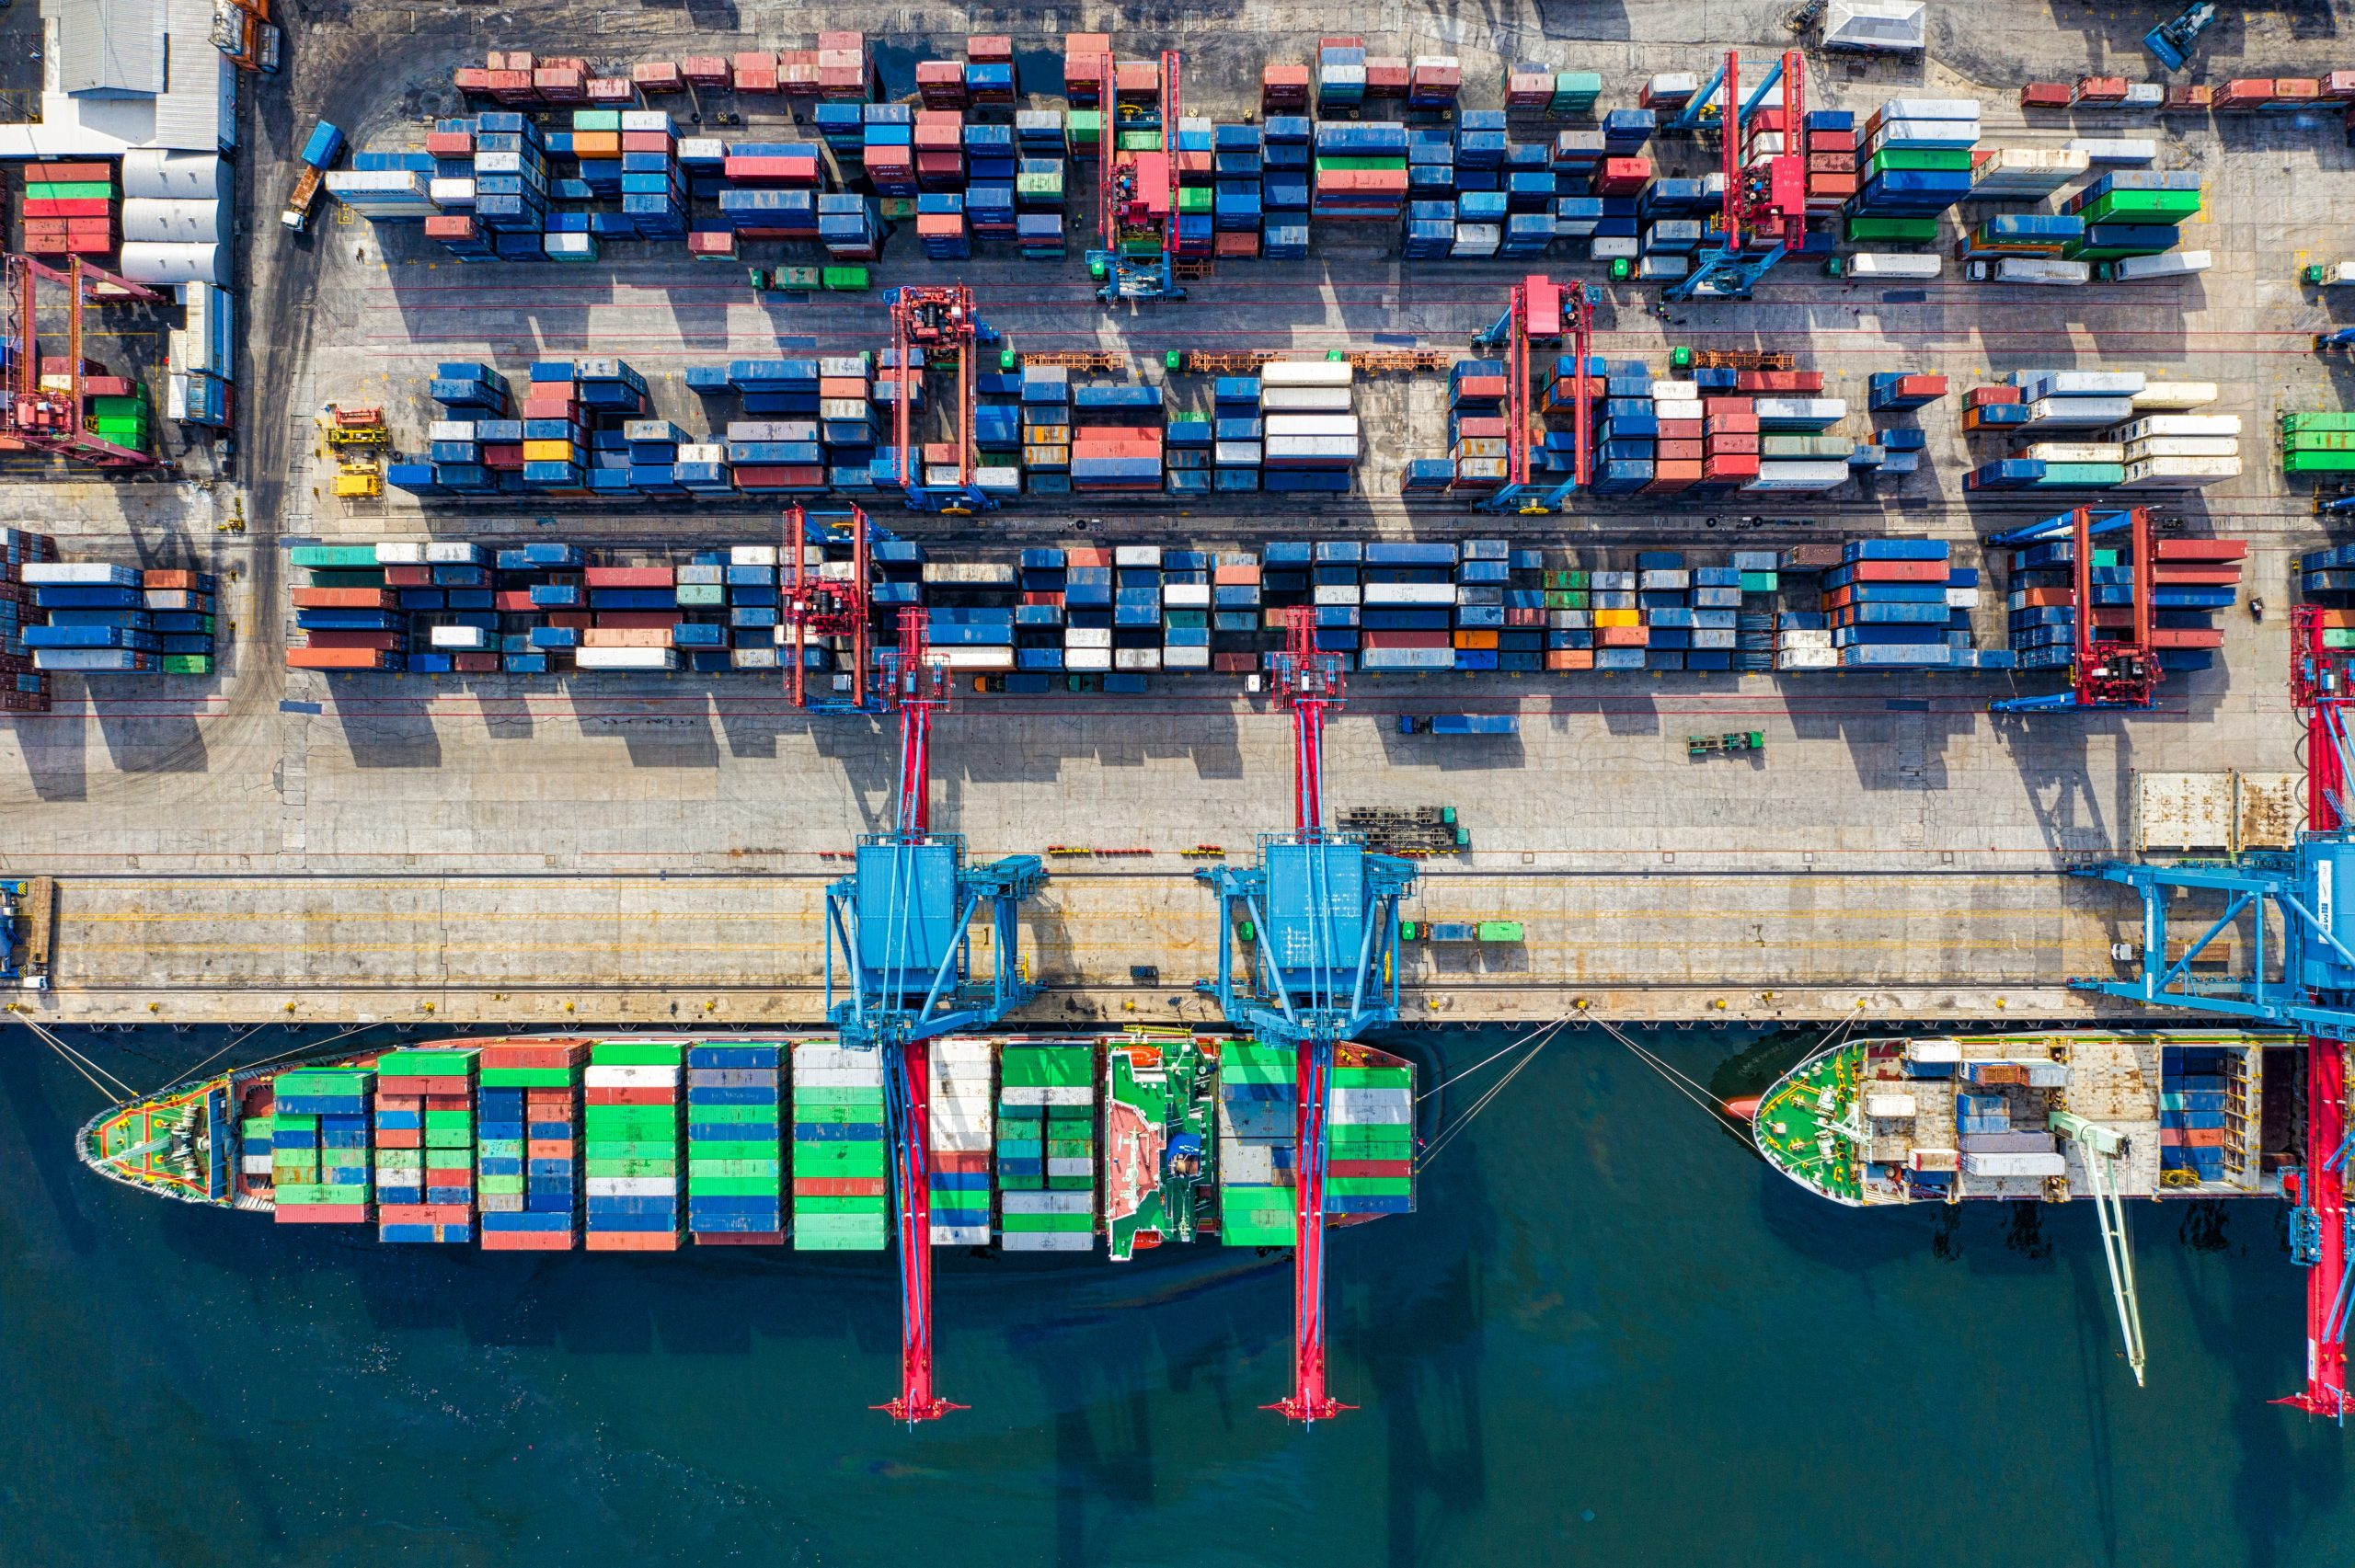 birds eye view photo of freight containers 2226458